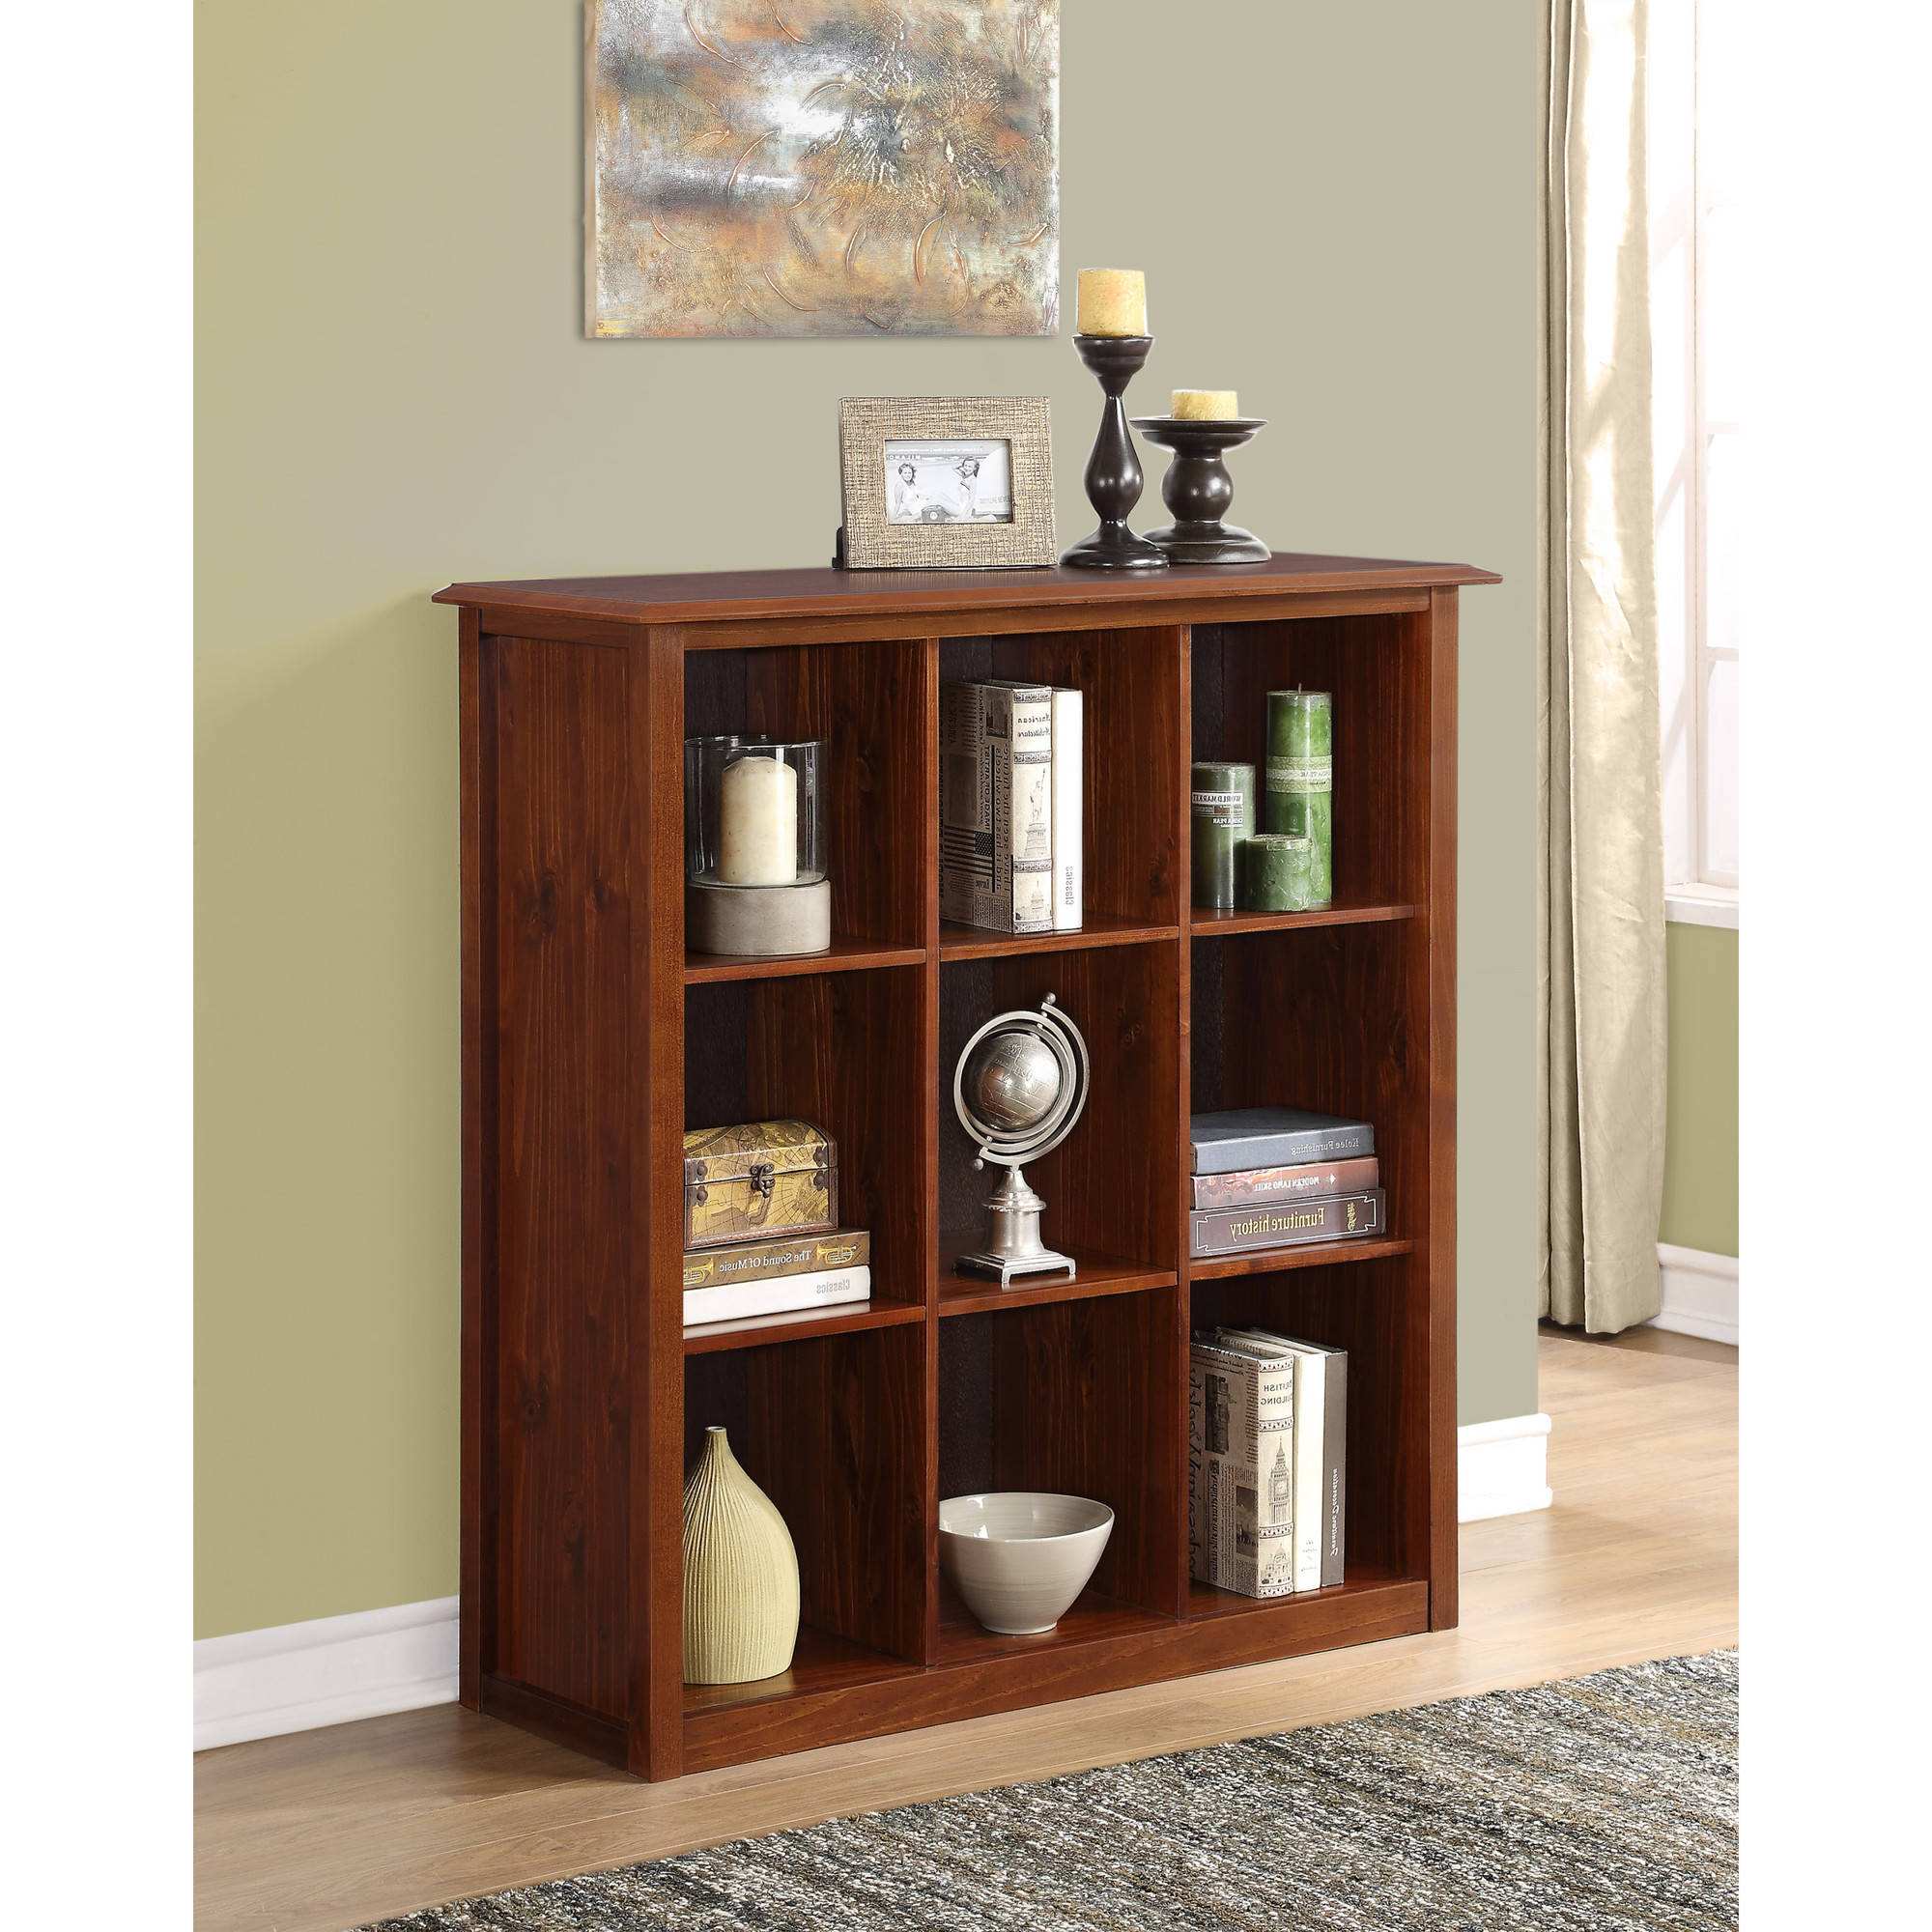 Simpli Home Carlton 9 Cube Bookcase & Storage Unit In Widely Used Strauss Cube Unit Bookcases (View 12 of 20)